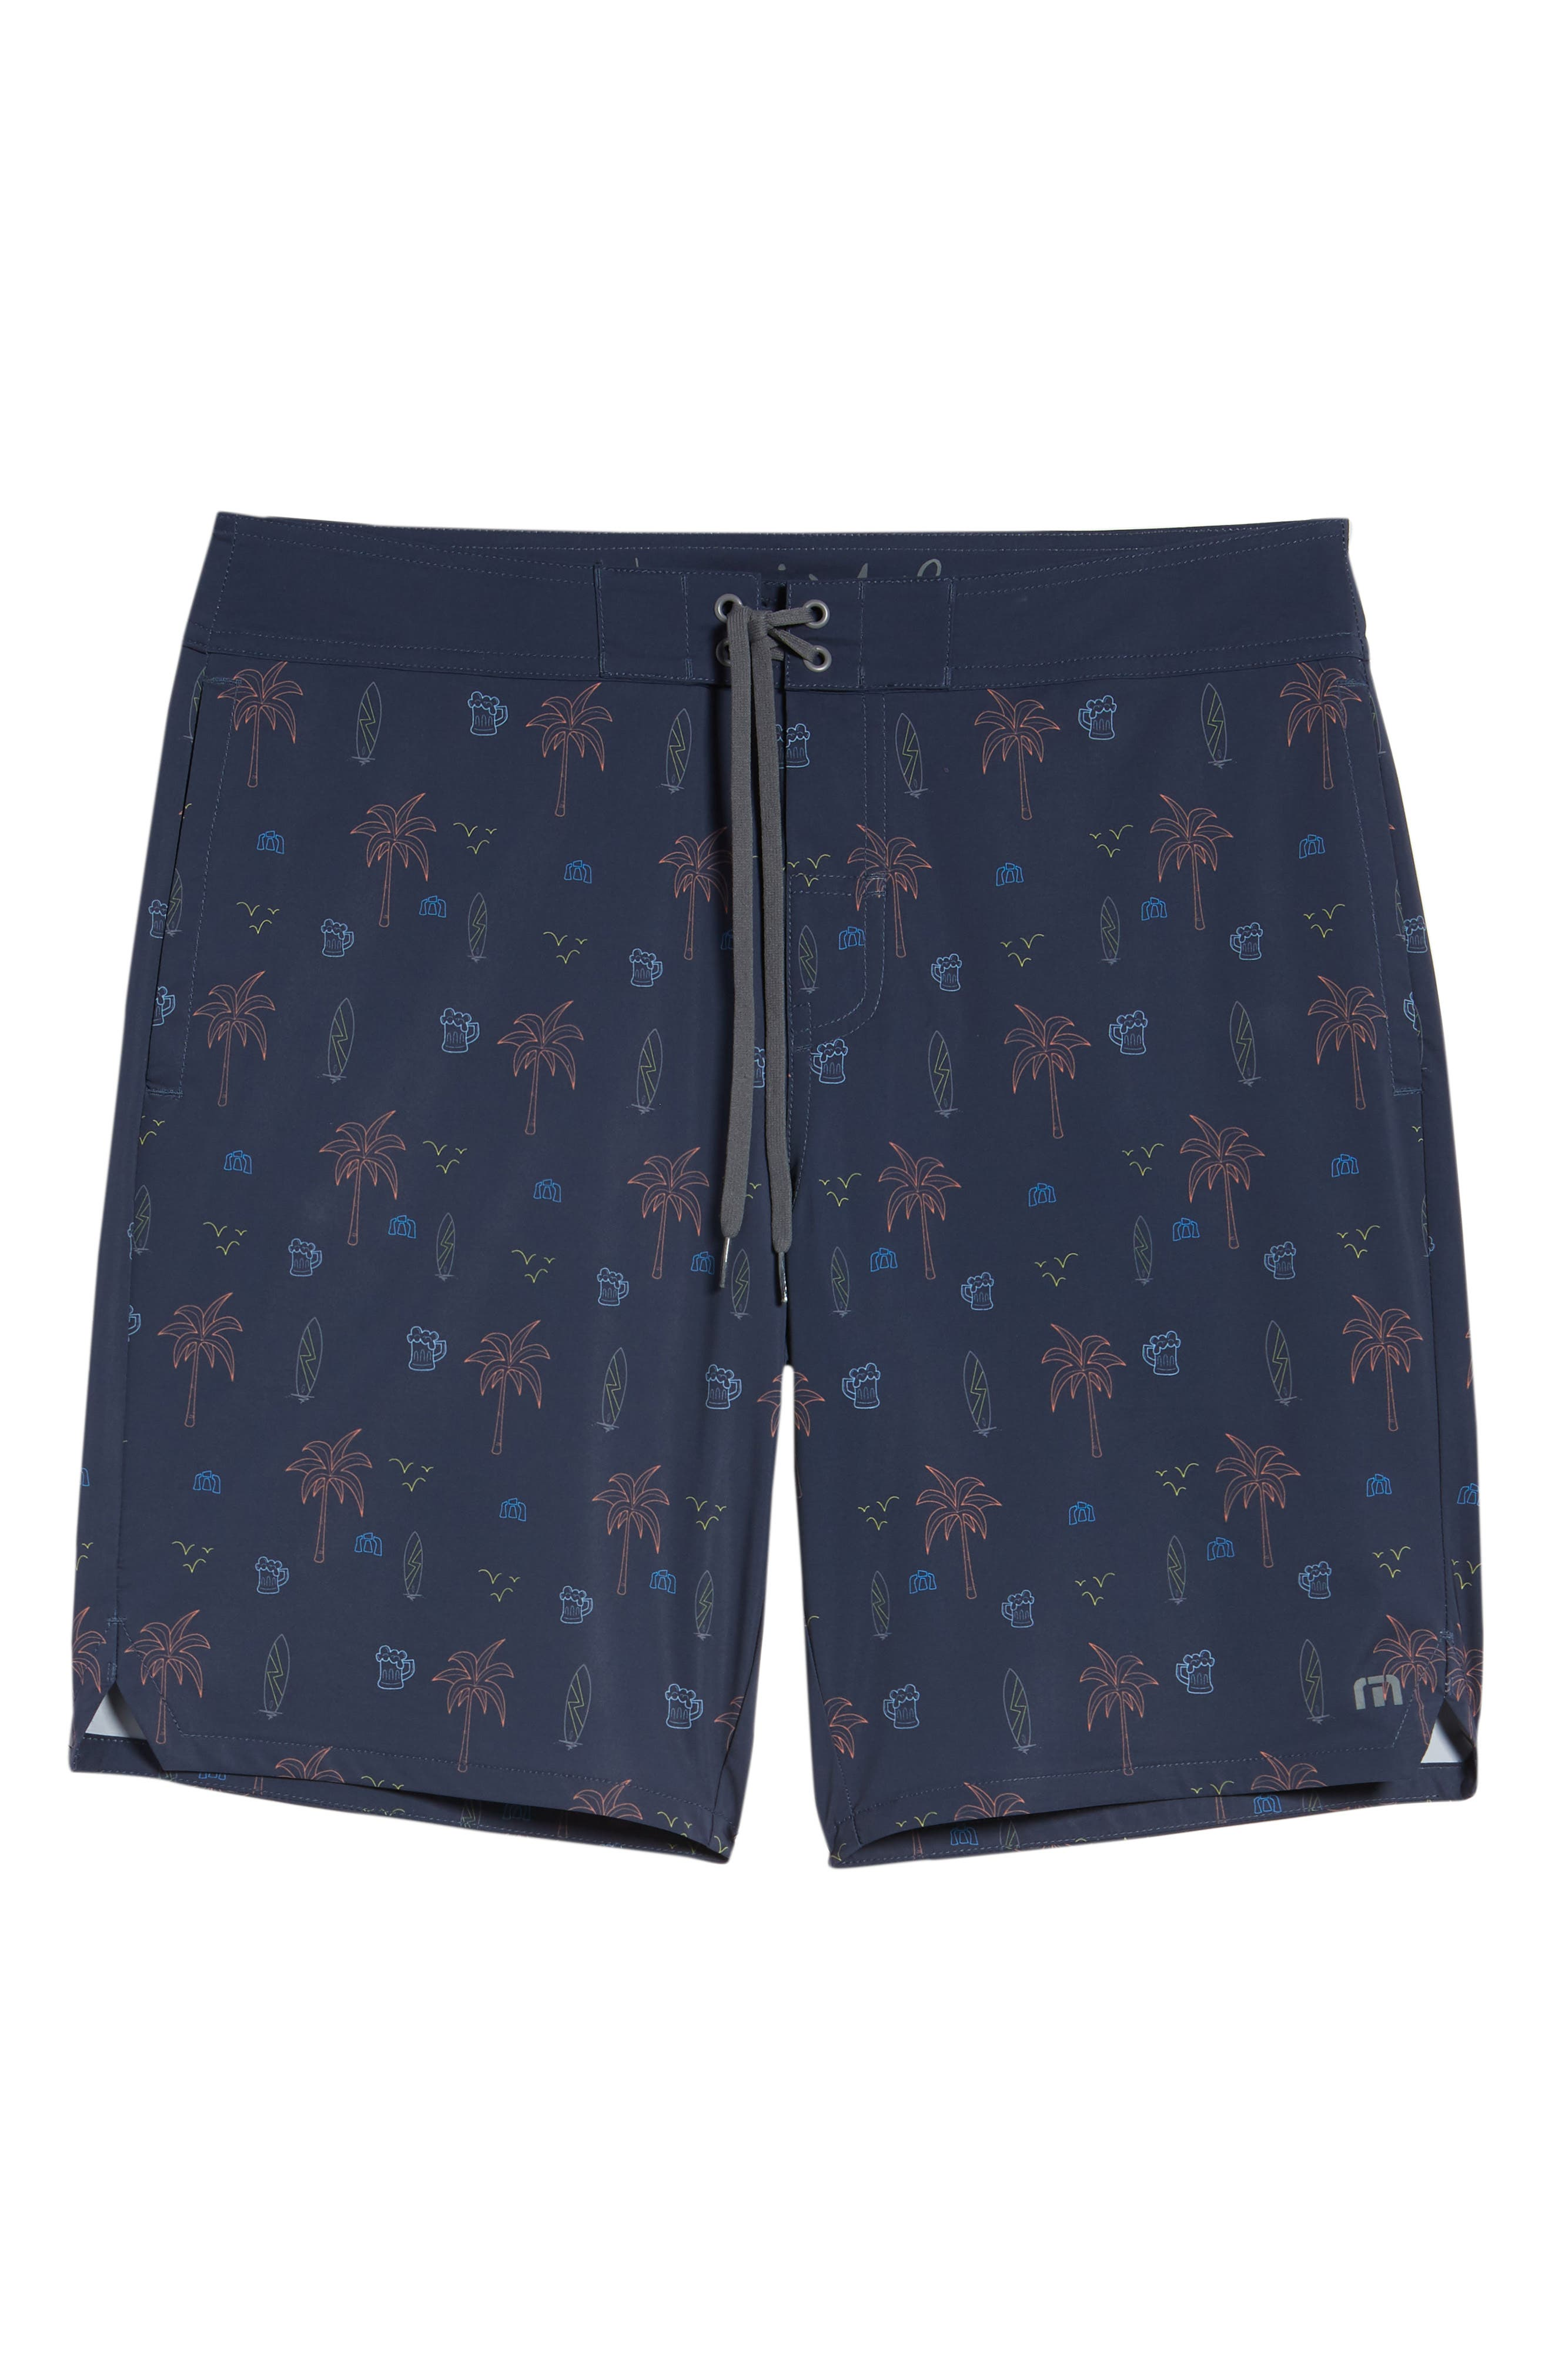 Safari Regular Fit Board Shorts,                             Alternate thumbnail 6, color,                             Blue Nights